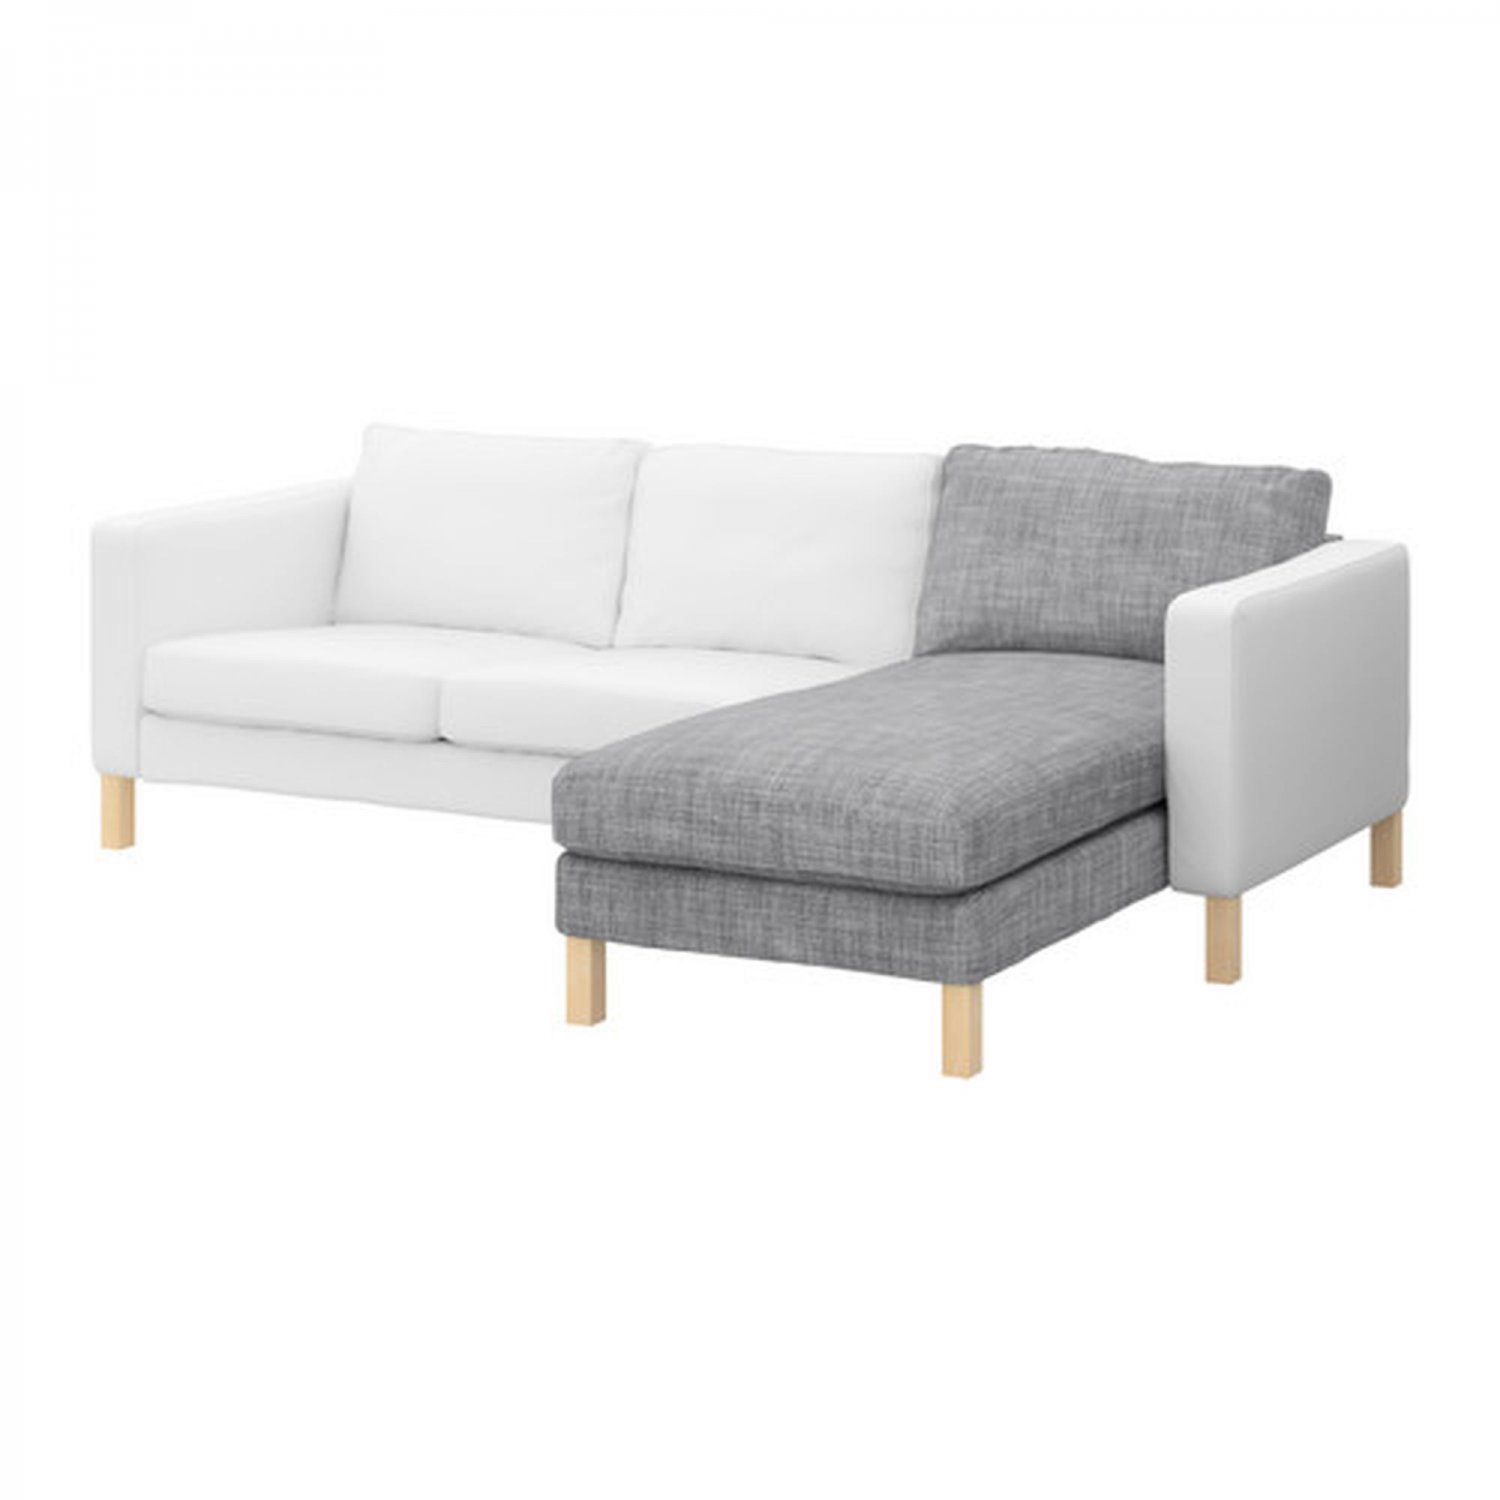 Ikea Sofas Chaise Longue Ikea Karlstad Add-on Chaise Longue Slipcover Lounge Cover